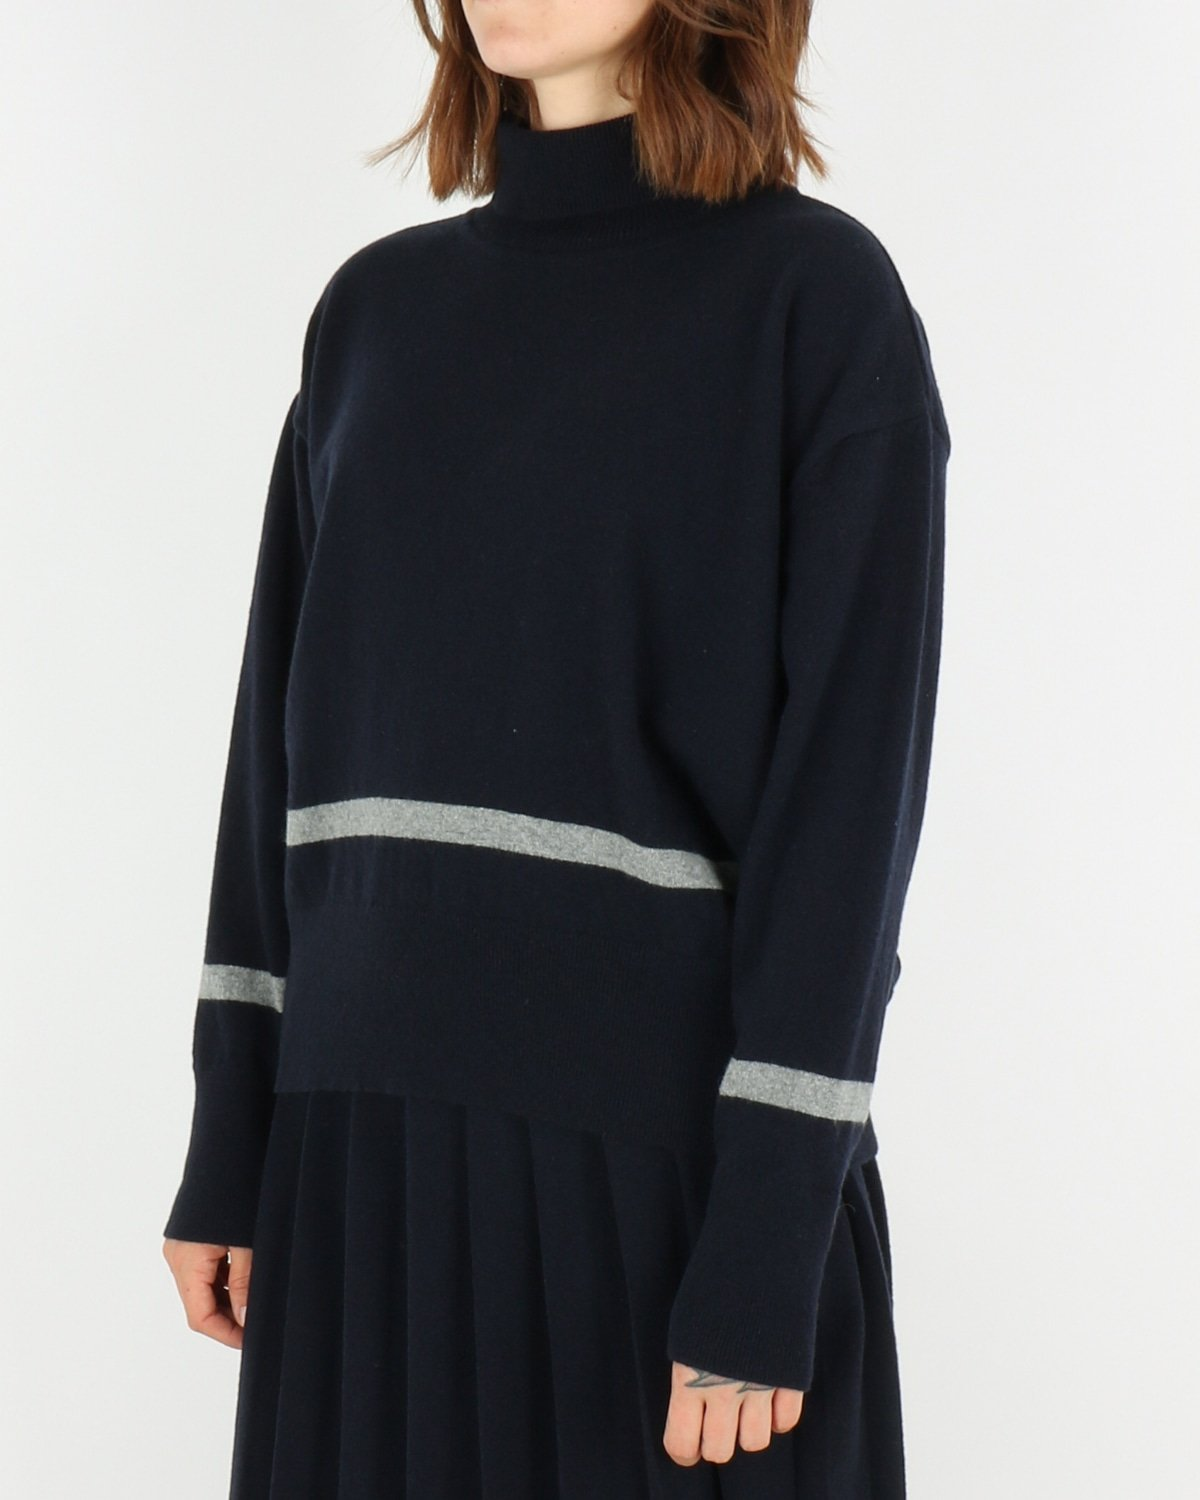 libertine libertine_husky knit_dark navy grey melange_2_4